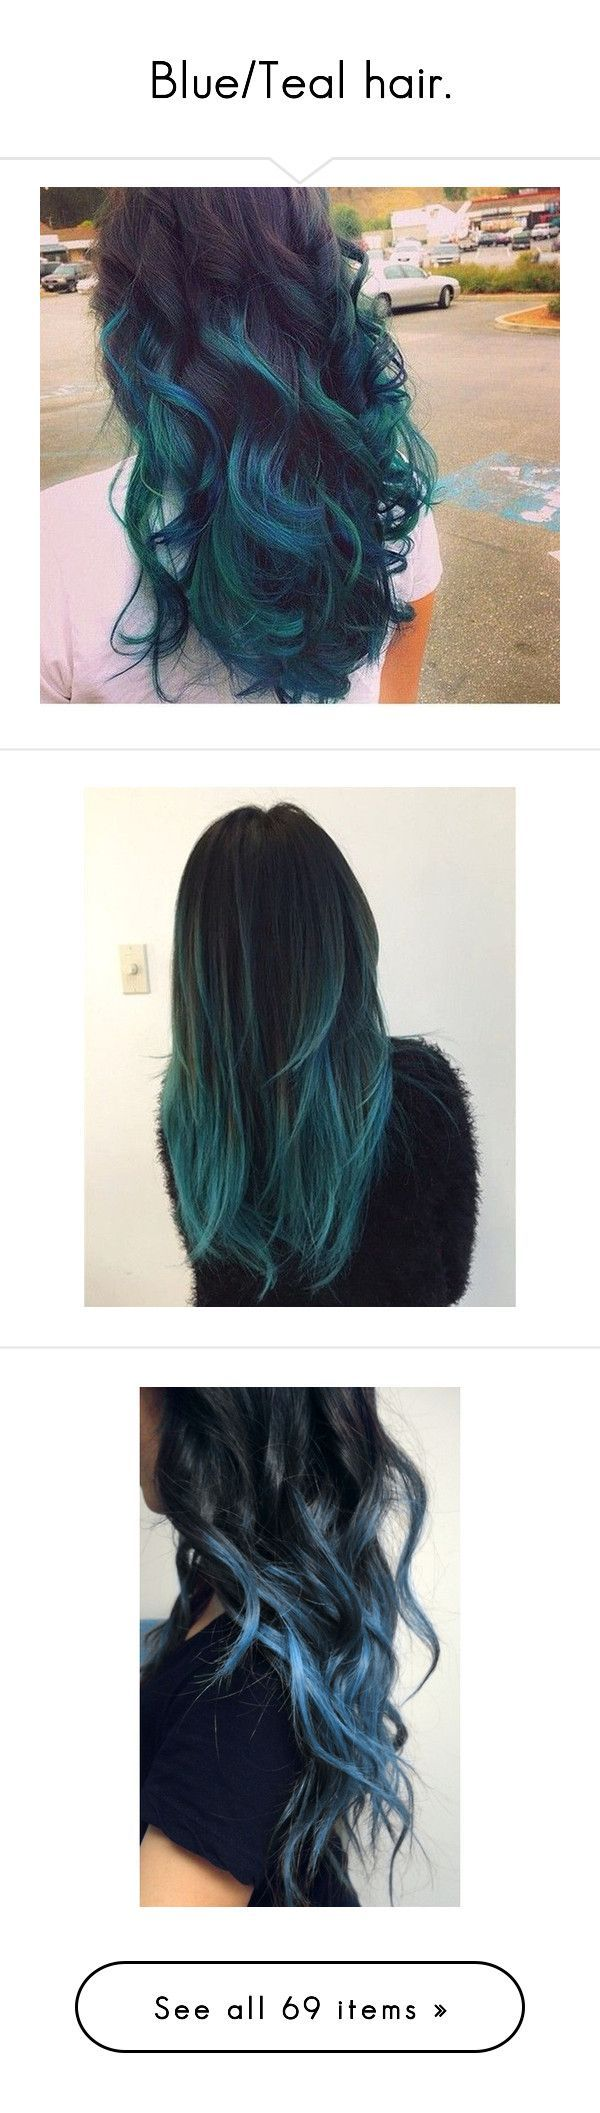 Blue/Teal hair. by biajhulya liked on Polyvore featuring